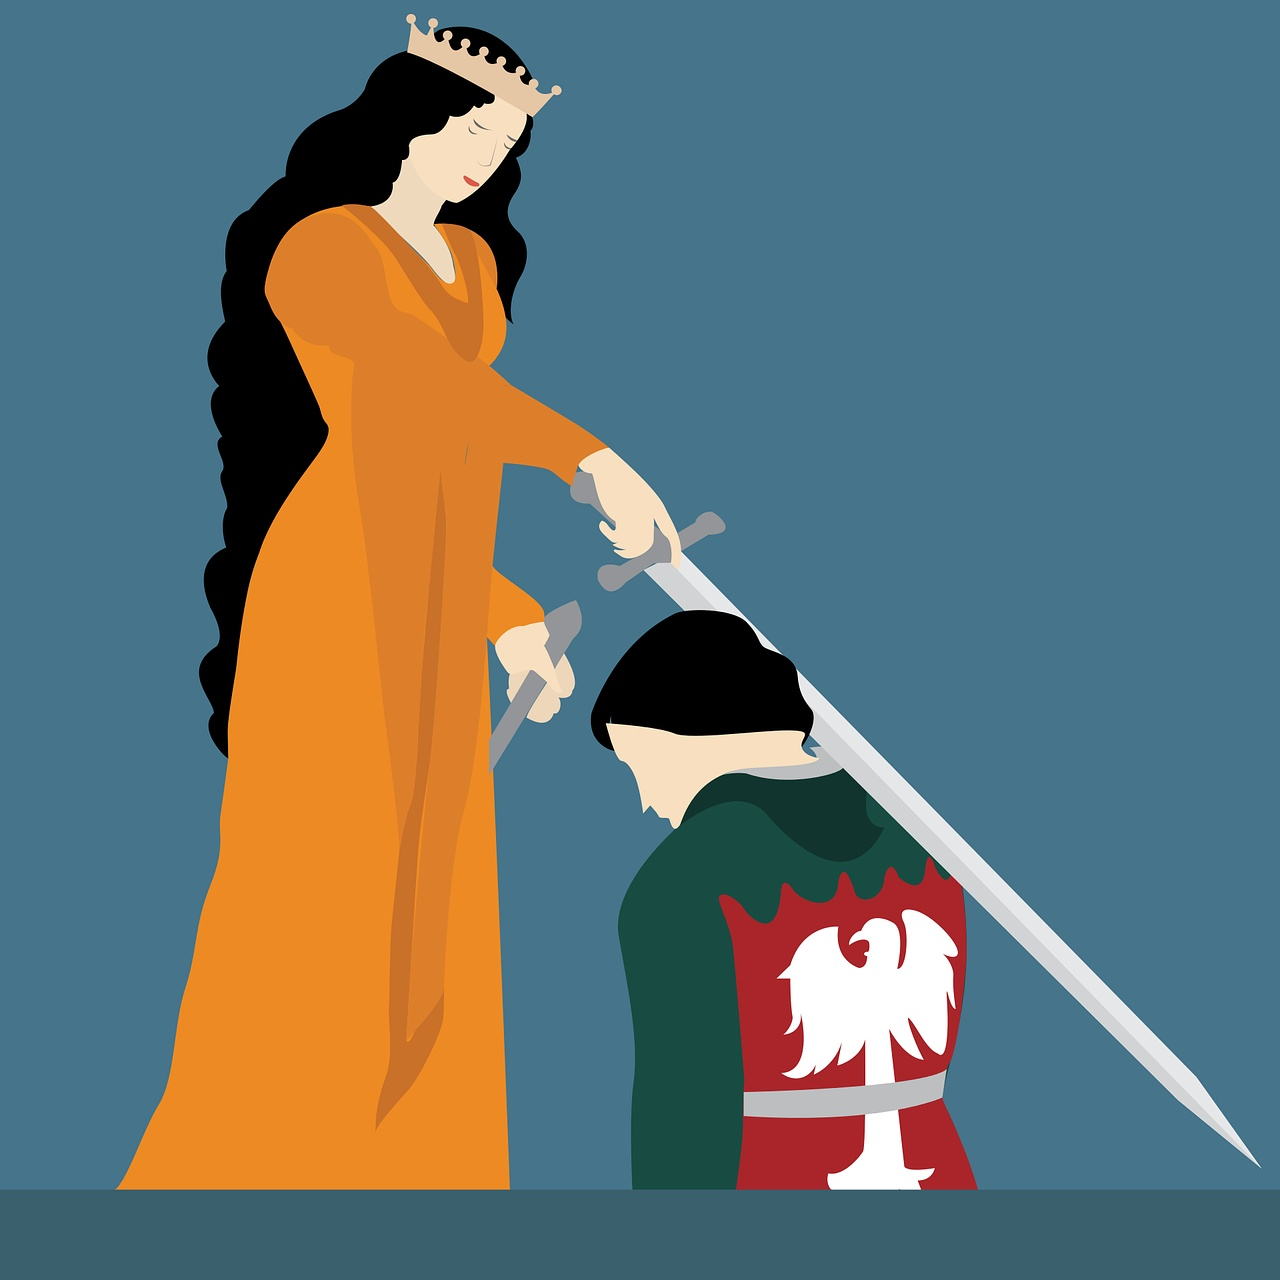 Queen and knight